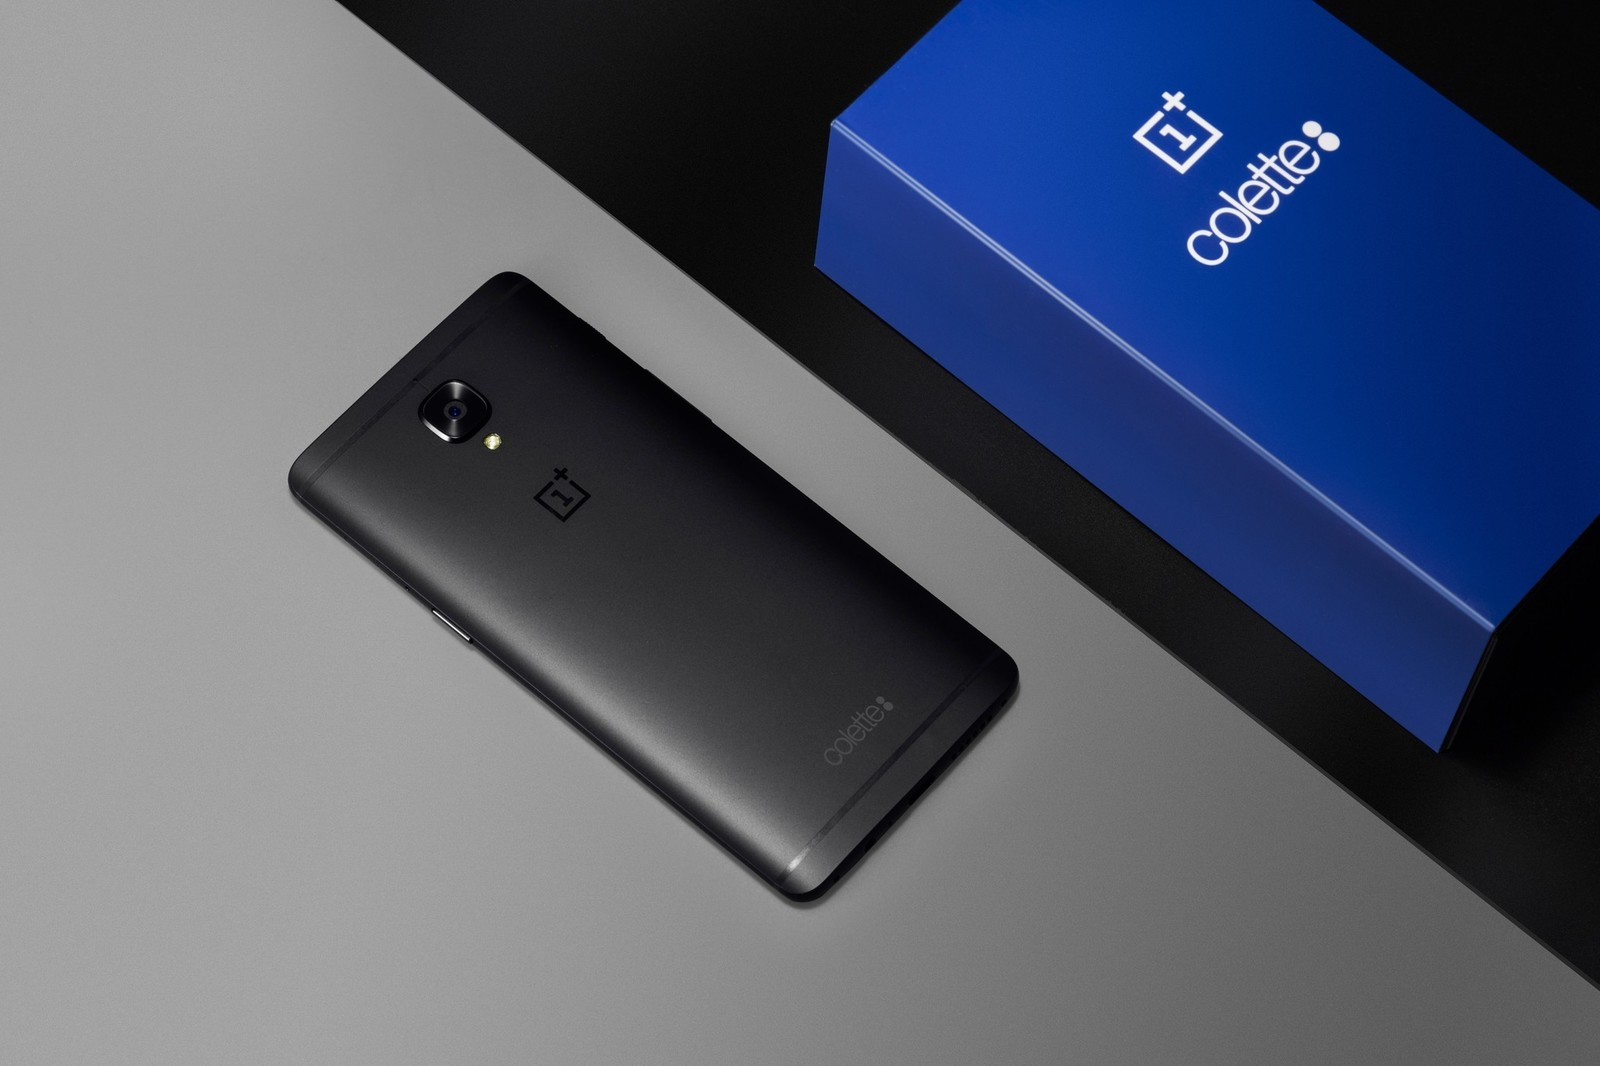 The OnePlus 3T could soon be discontinued